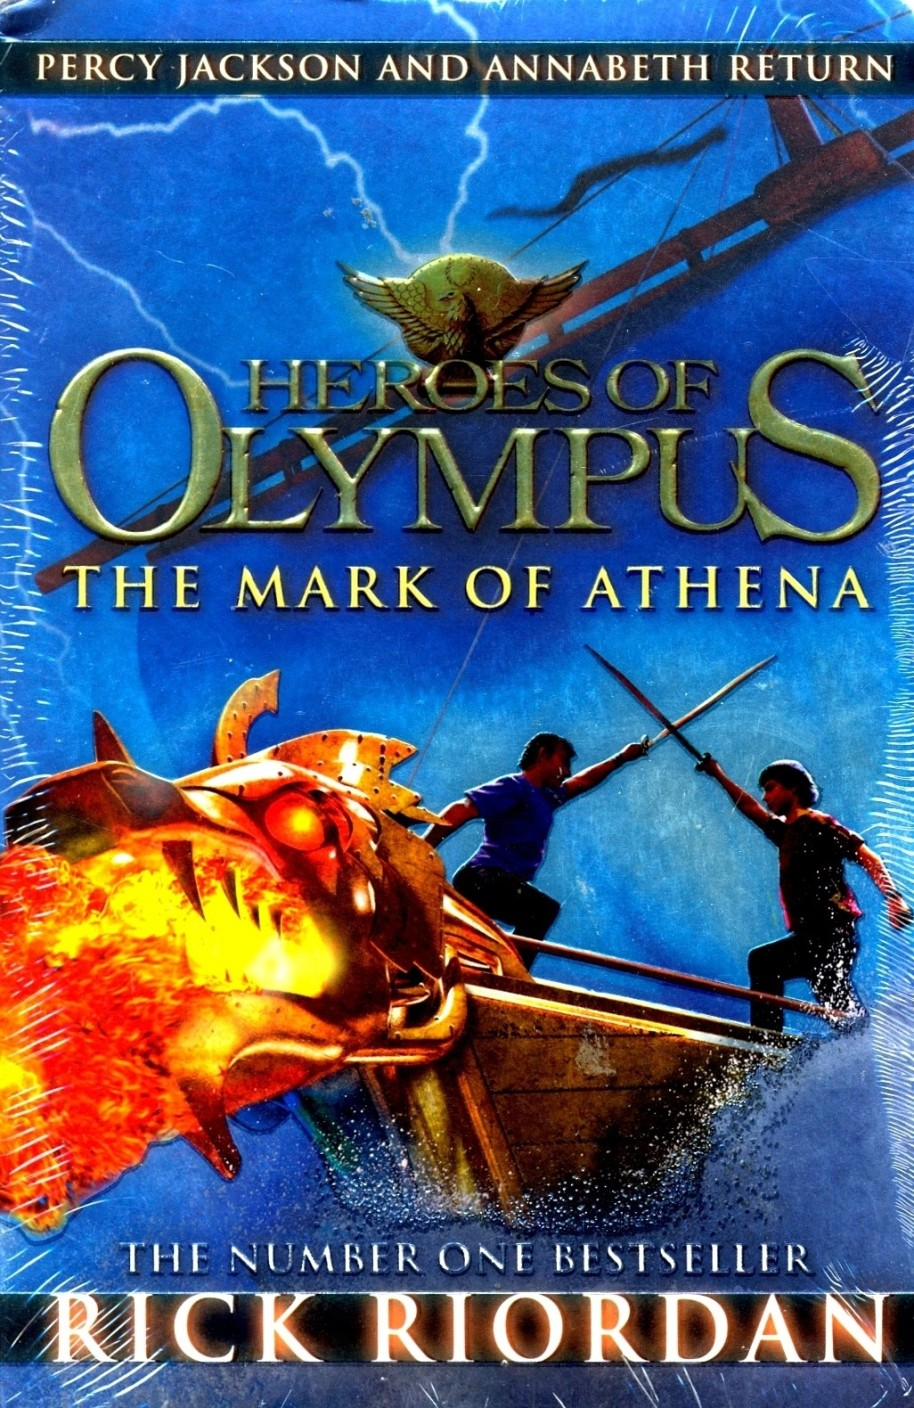 book review heroes of olympus Book 4 heroes of olympus book 4  ivy beatles lars saabye christensen distinguishing between atoms section review answers wren and martin solution book the way of.